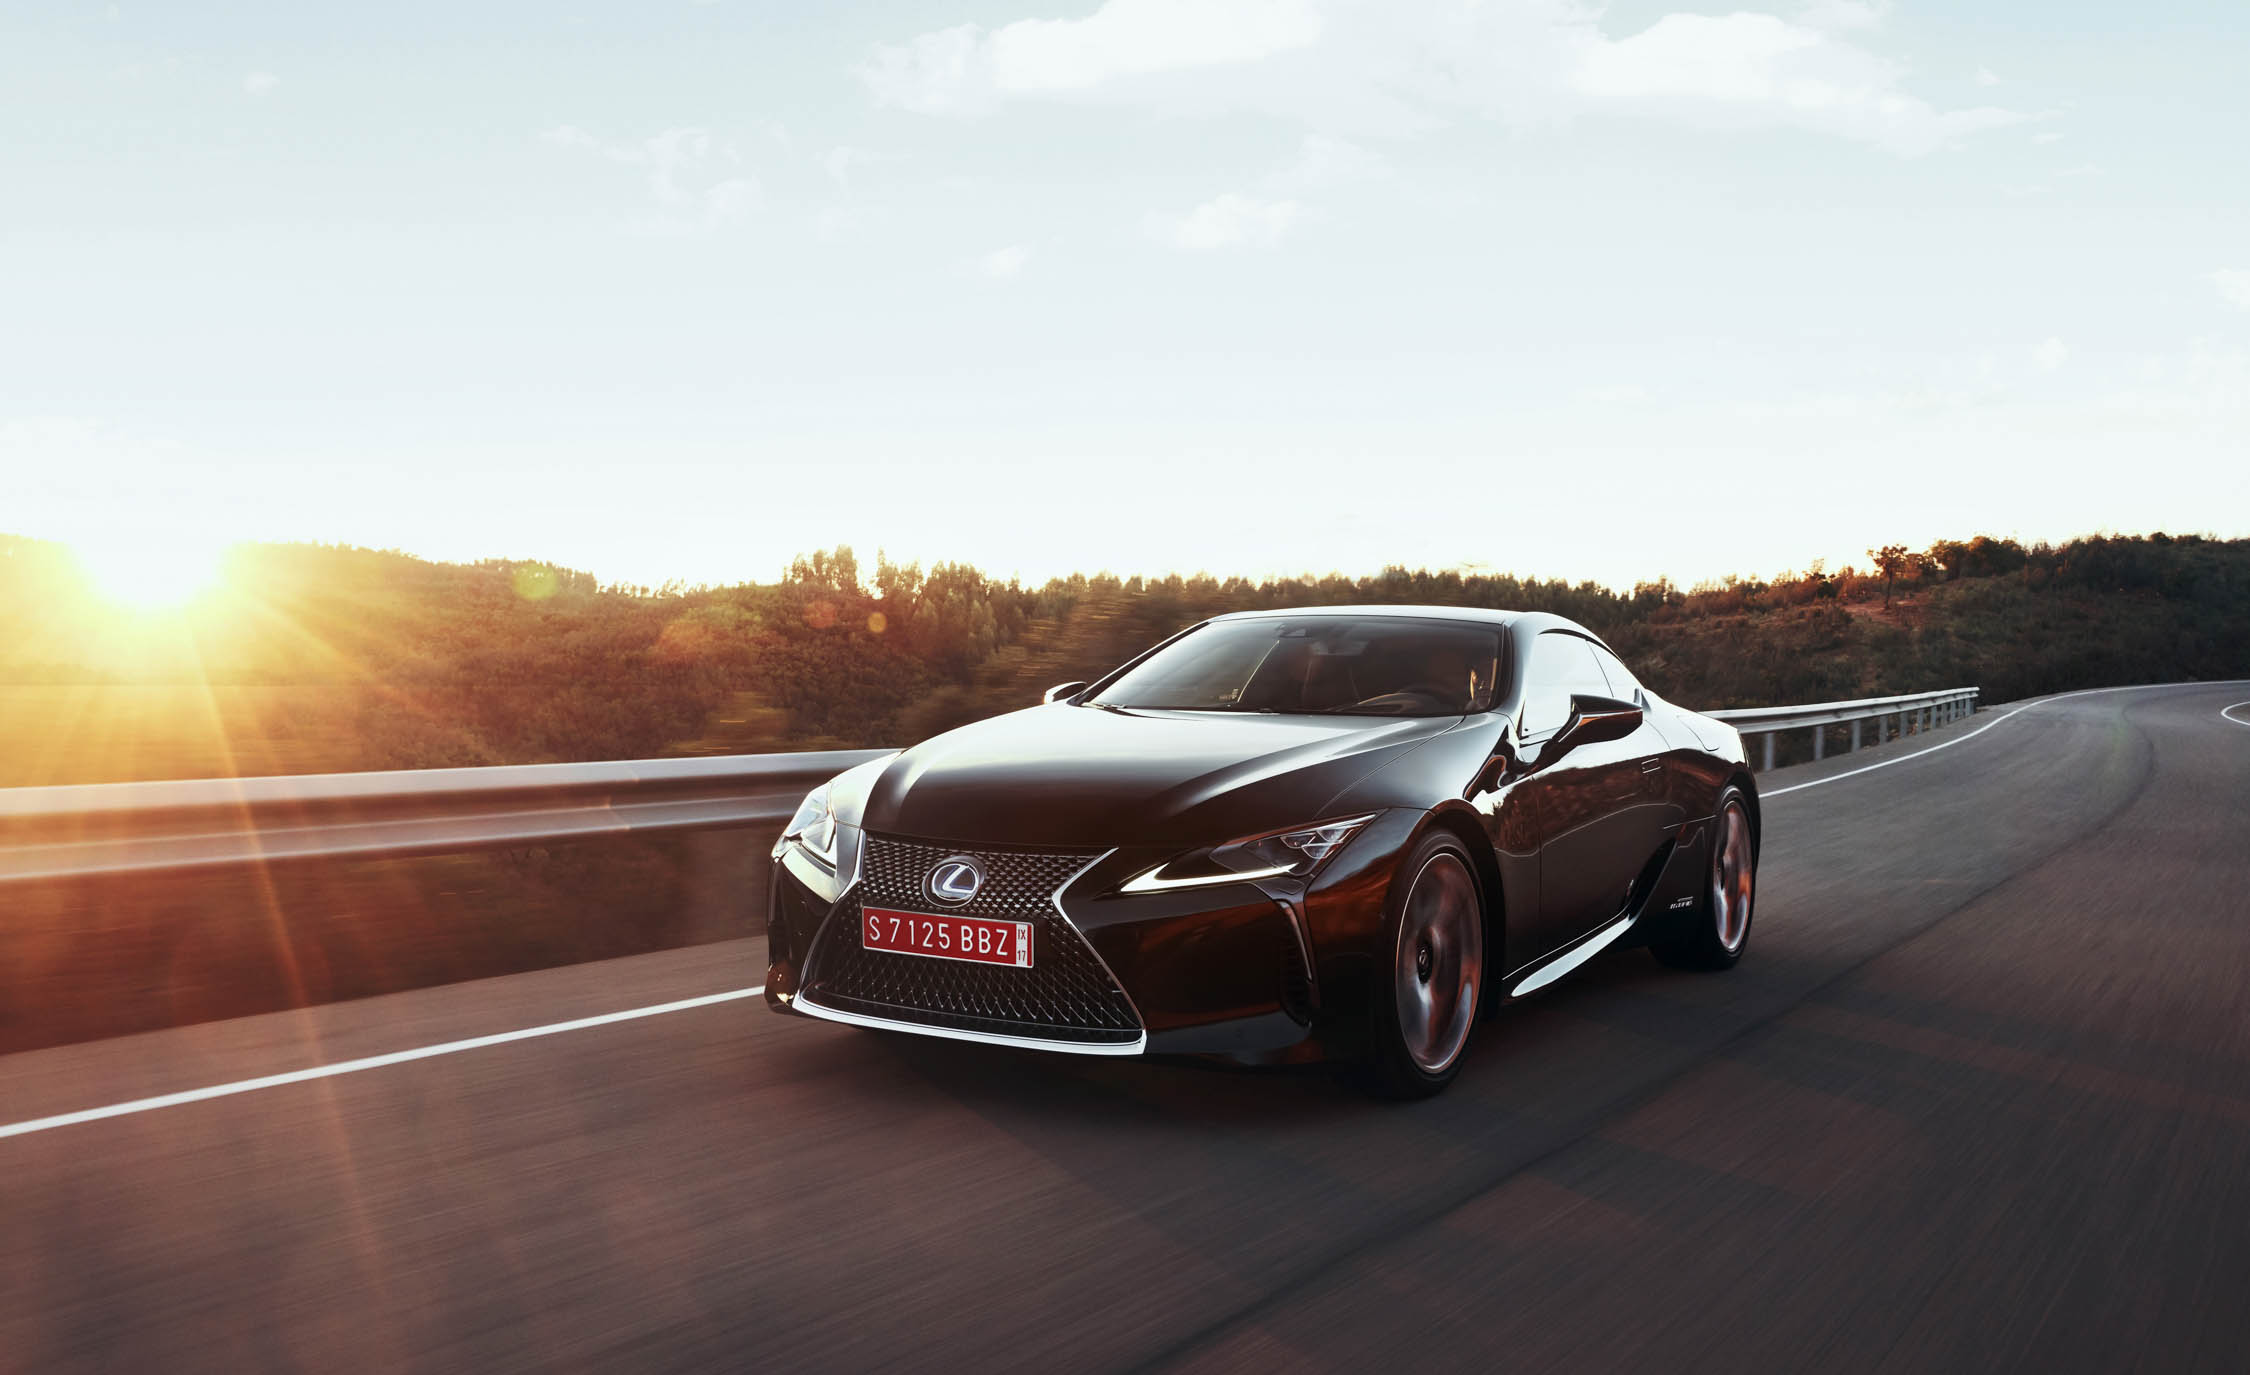 2018 Lexus Lc 500h Test Drive Front And Side View (Photo 58 of 84)